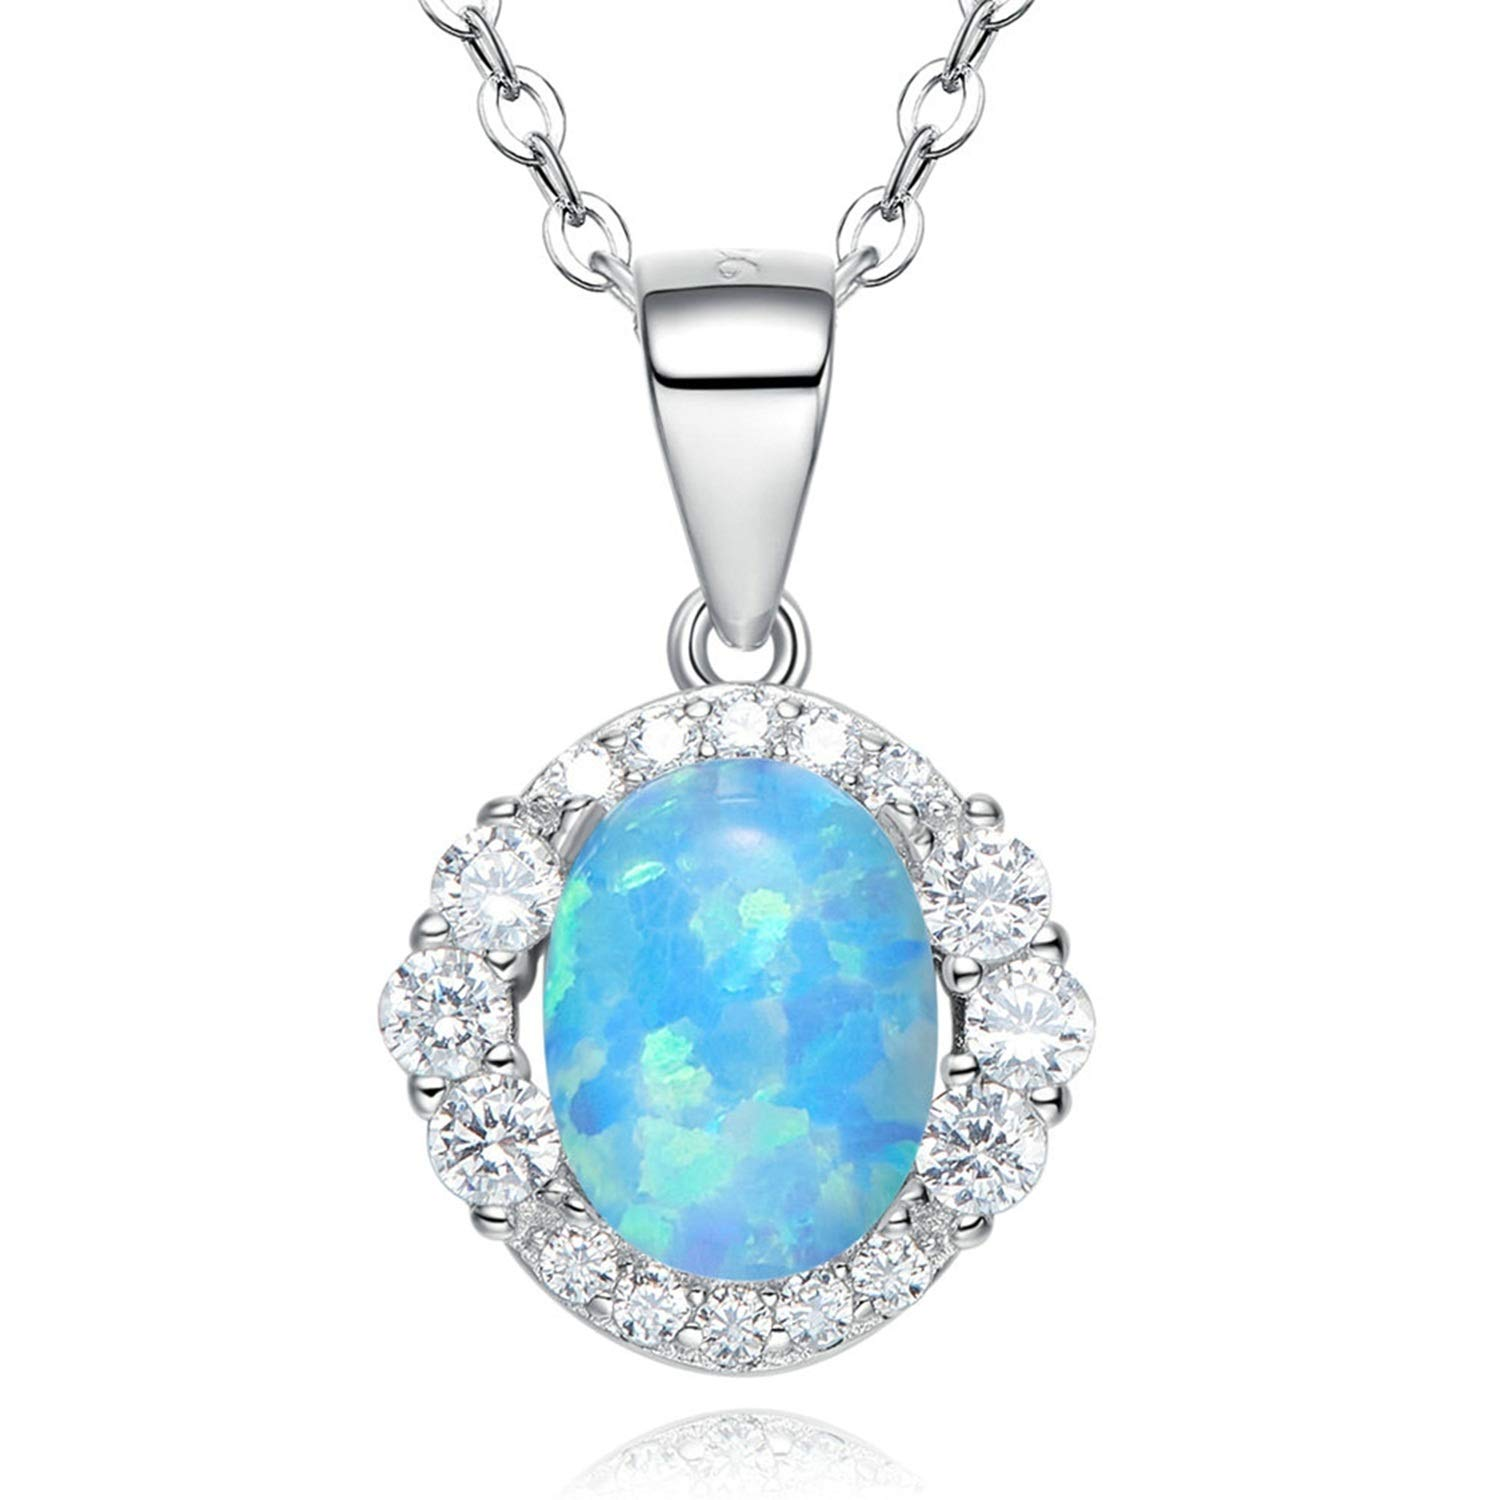 Epinki 925 Sterling Silver Women Necklace Oval Shape Pendant Friendship Chain with Cubic Zirconia